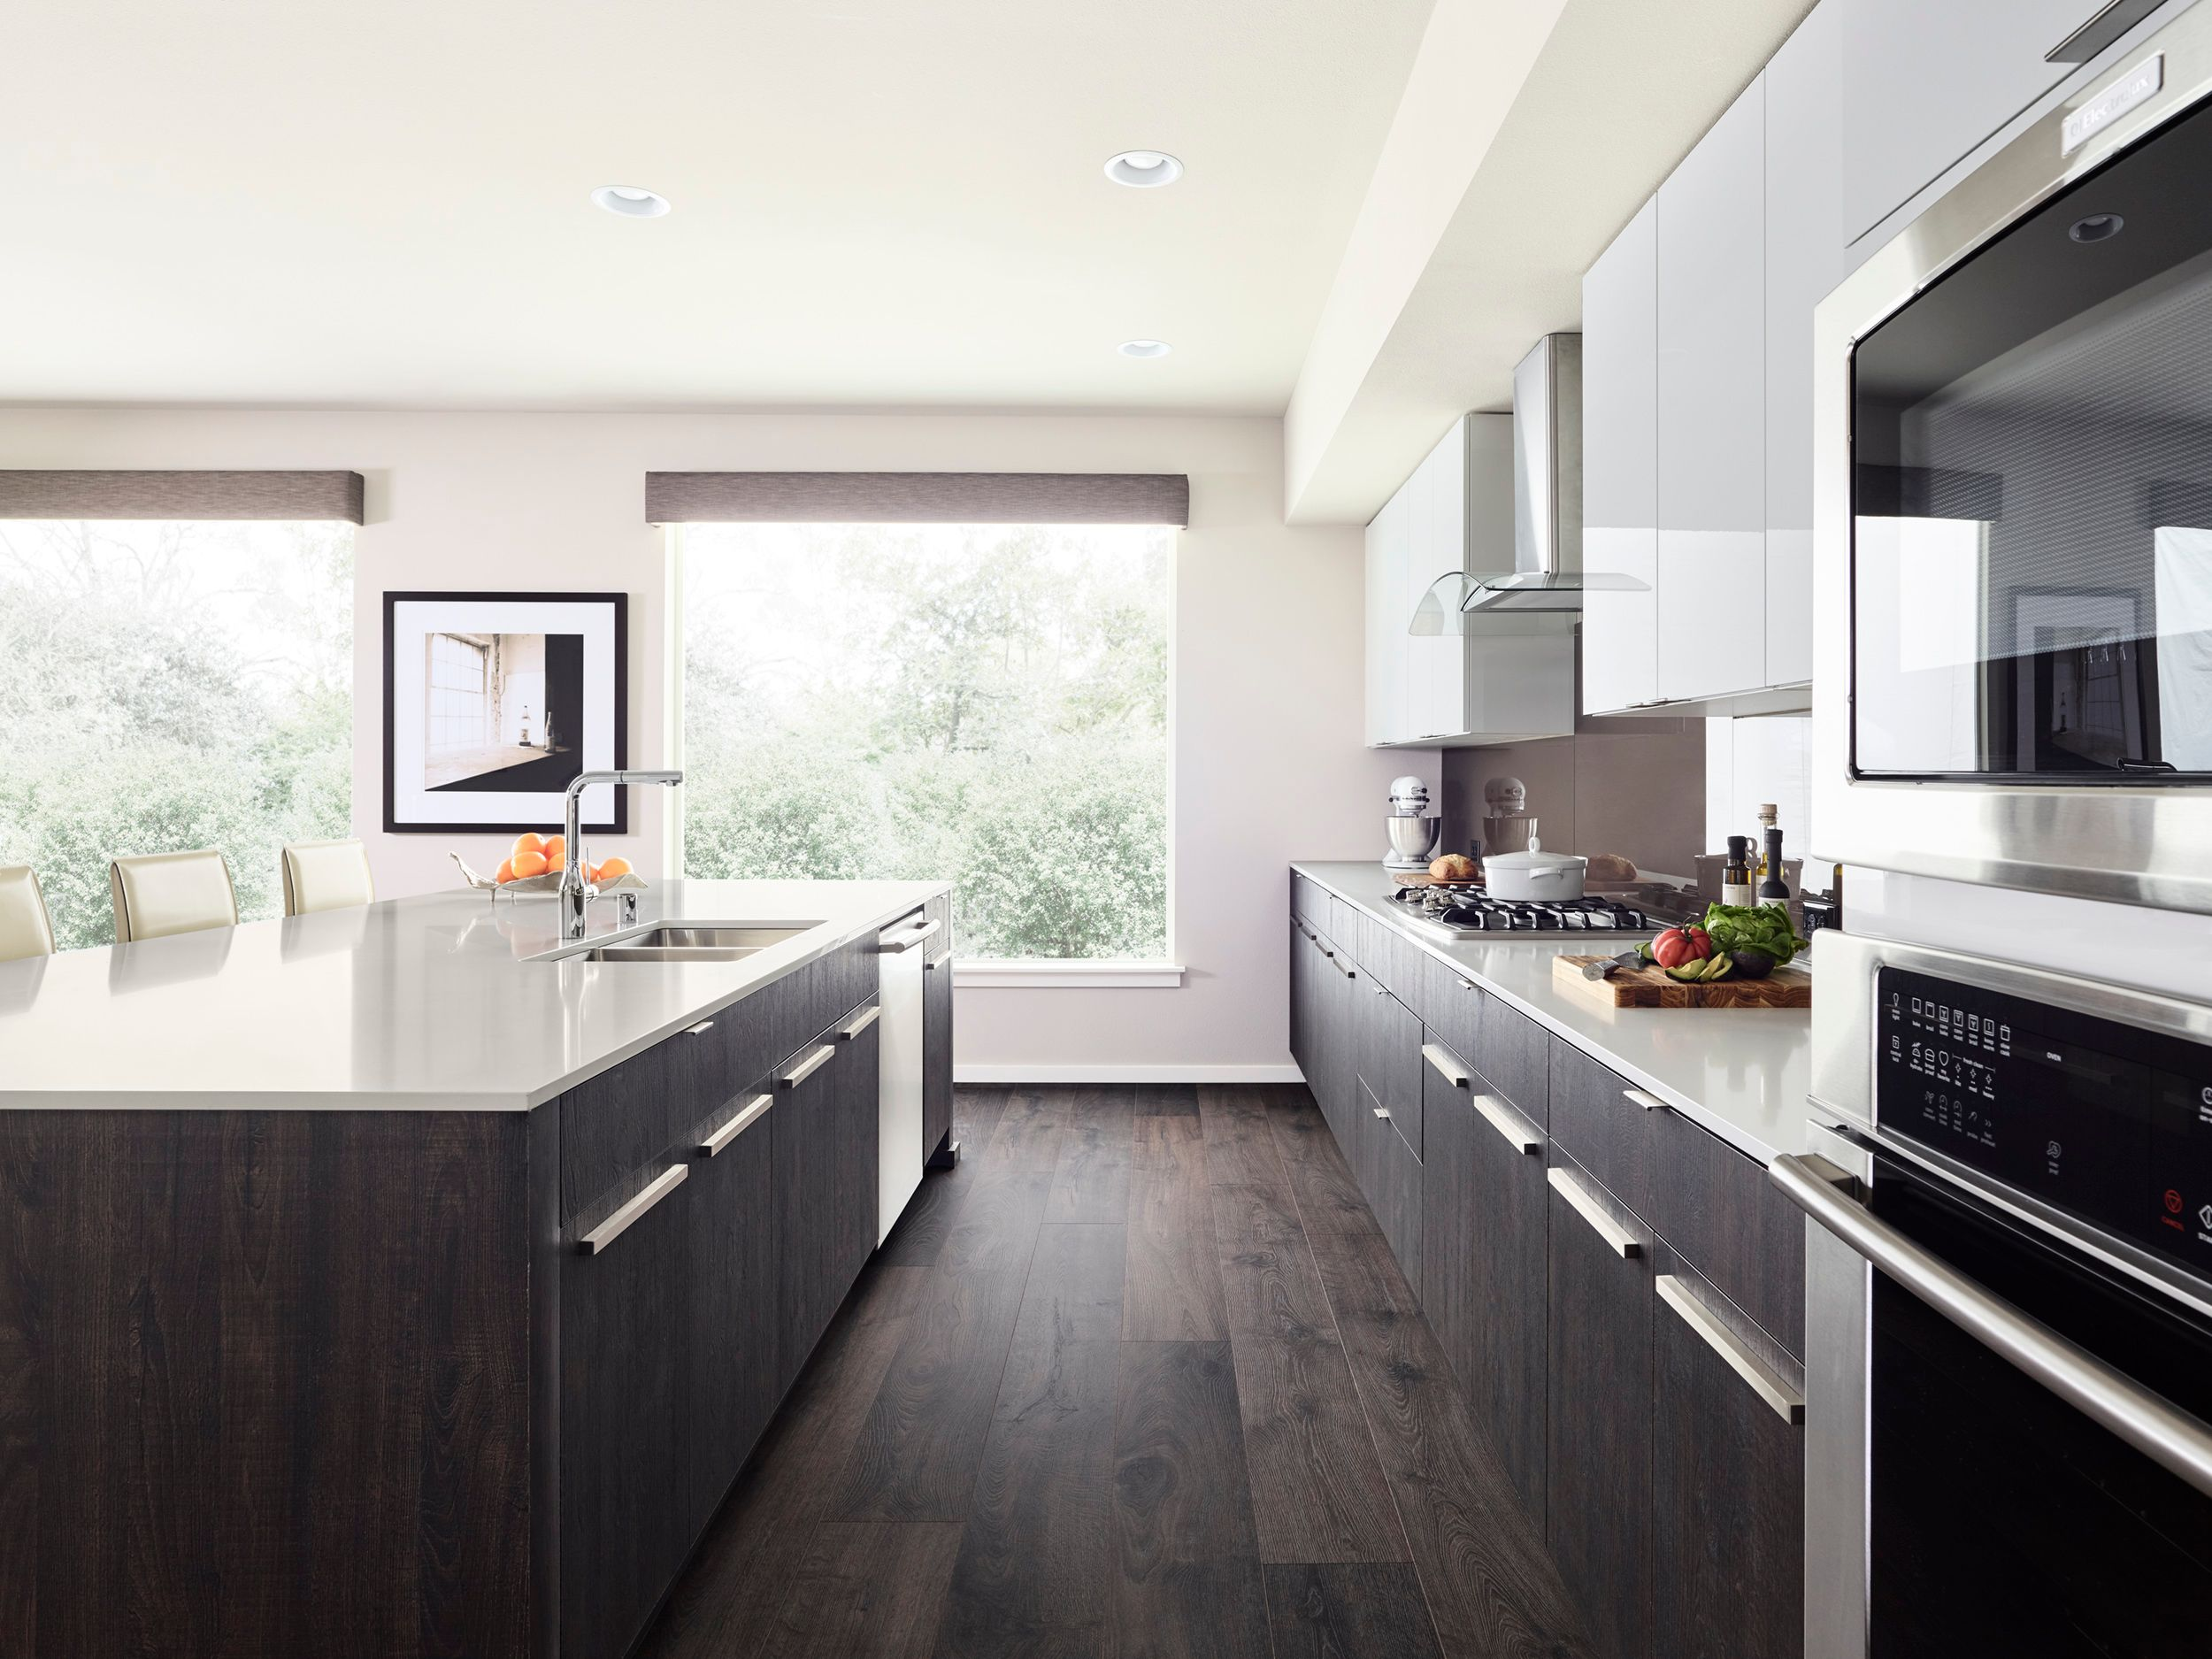 Kitchen featured in the Camden By MainVue Homes in Tacoma, WA